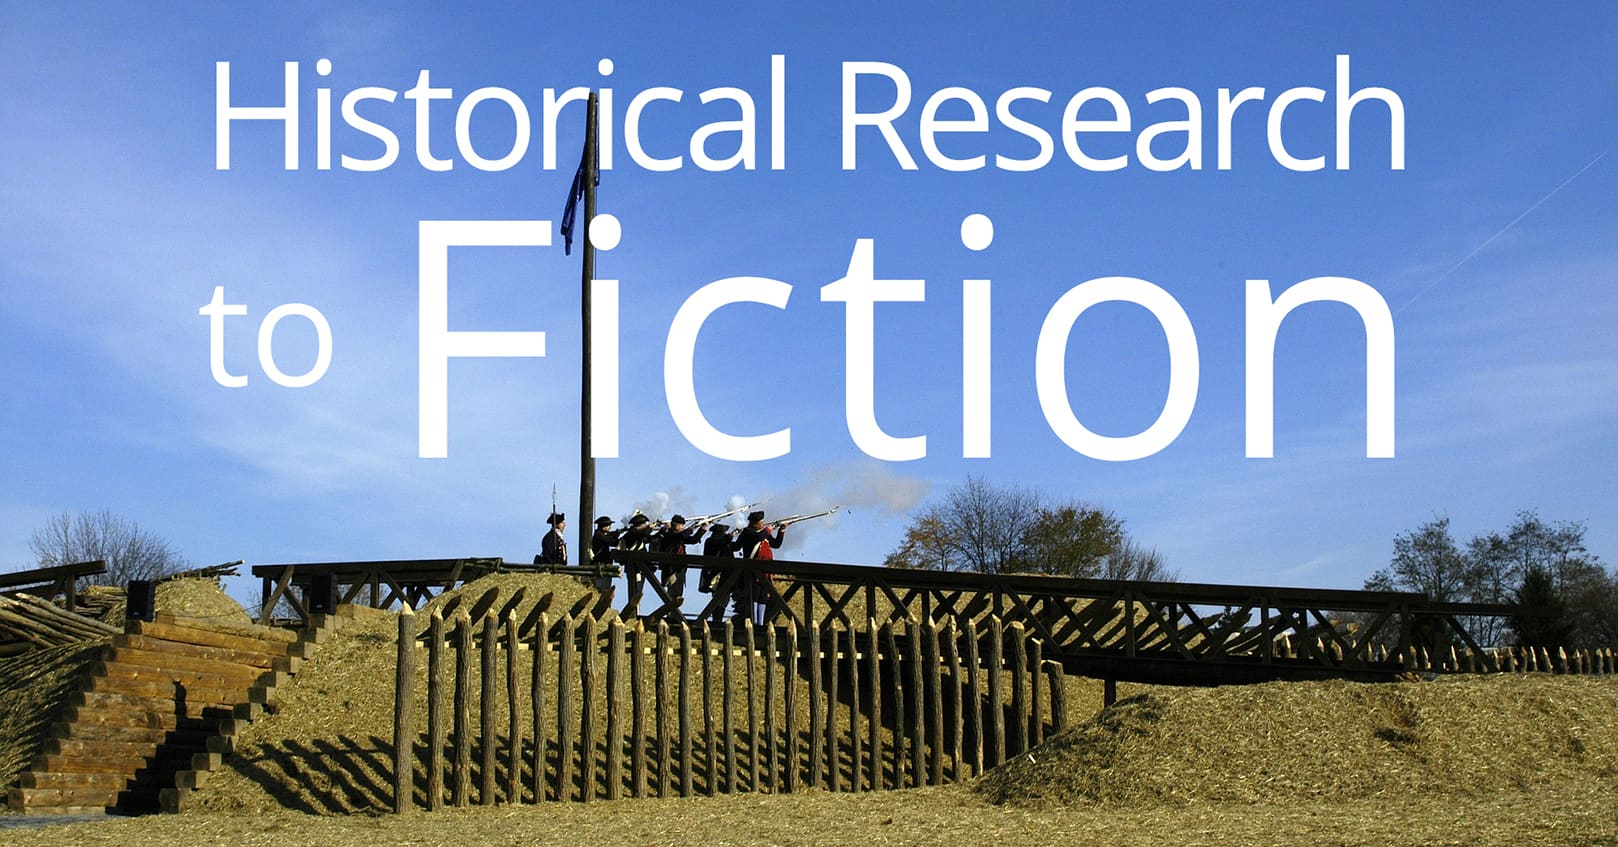 historical research to fiction